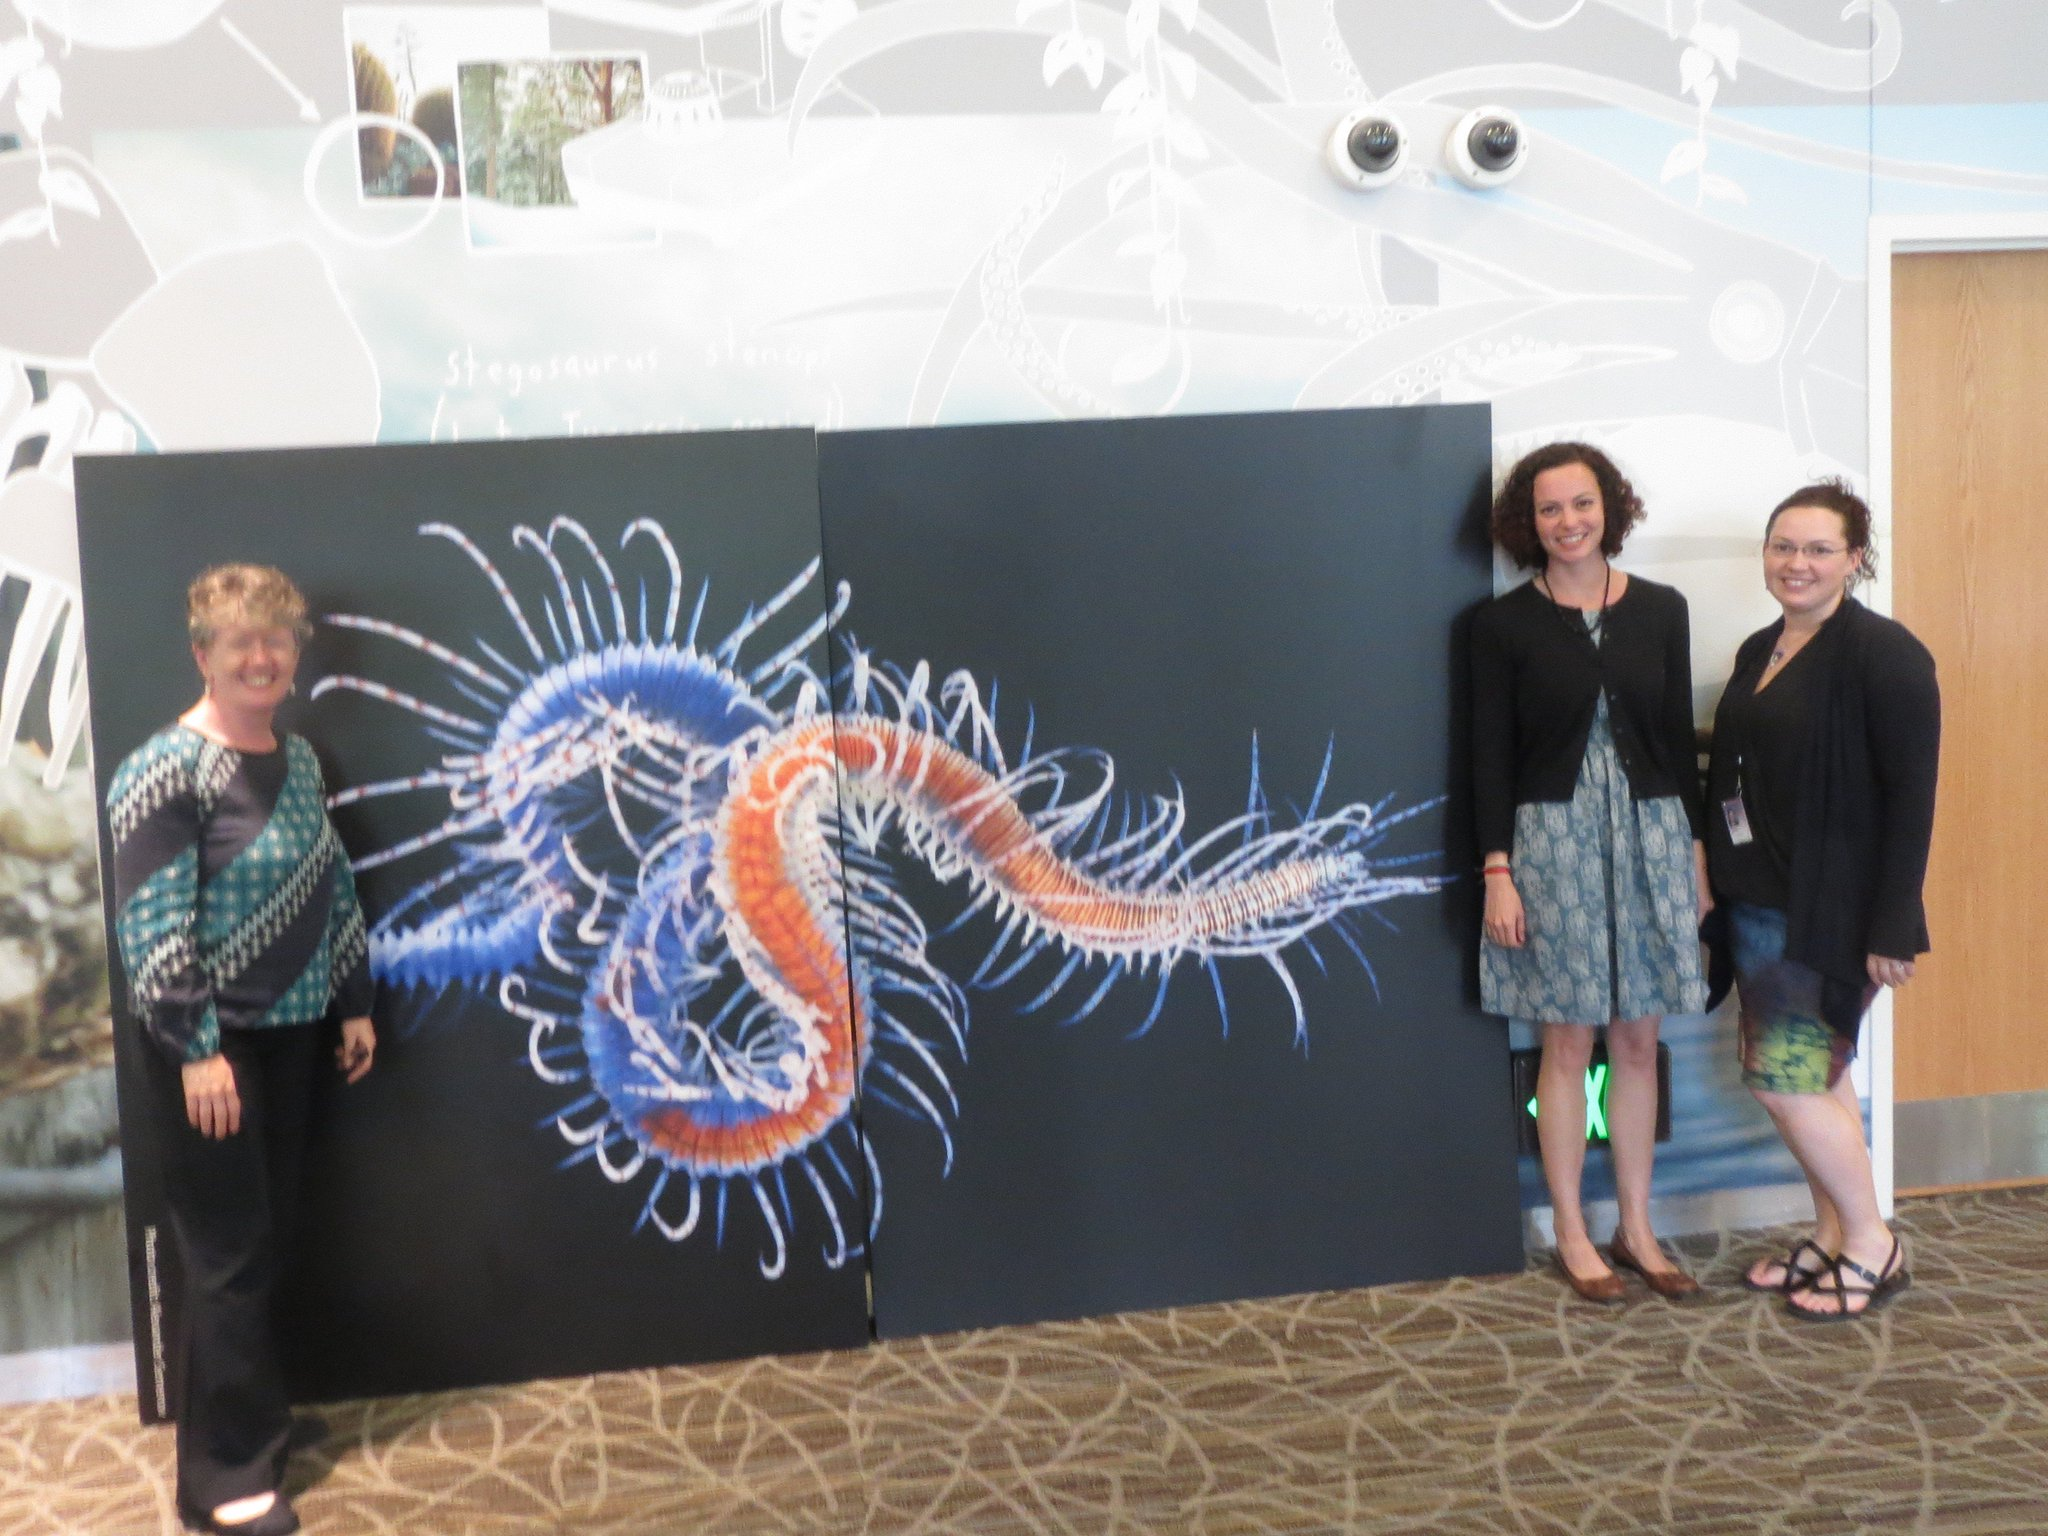 Visit the Q?rius center TODAY for #PolychaeteDay and get your picture taken with the giant syllid worm! https://t.co/fwtMDffdmf